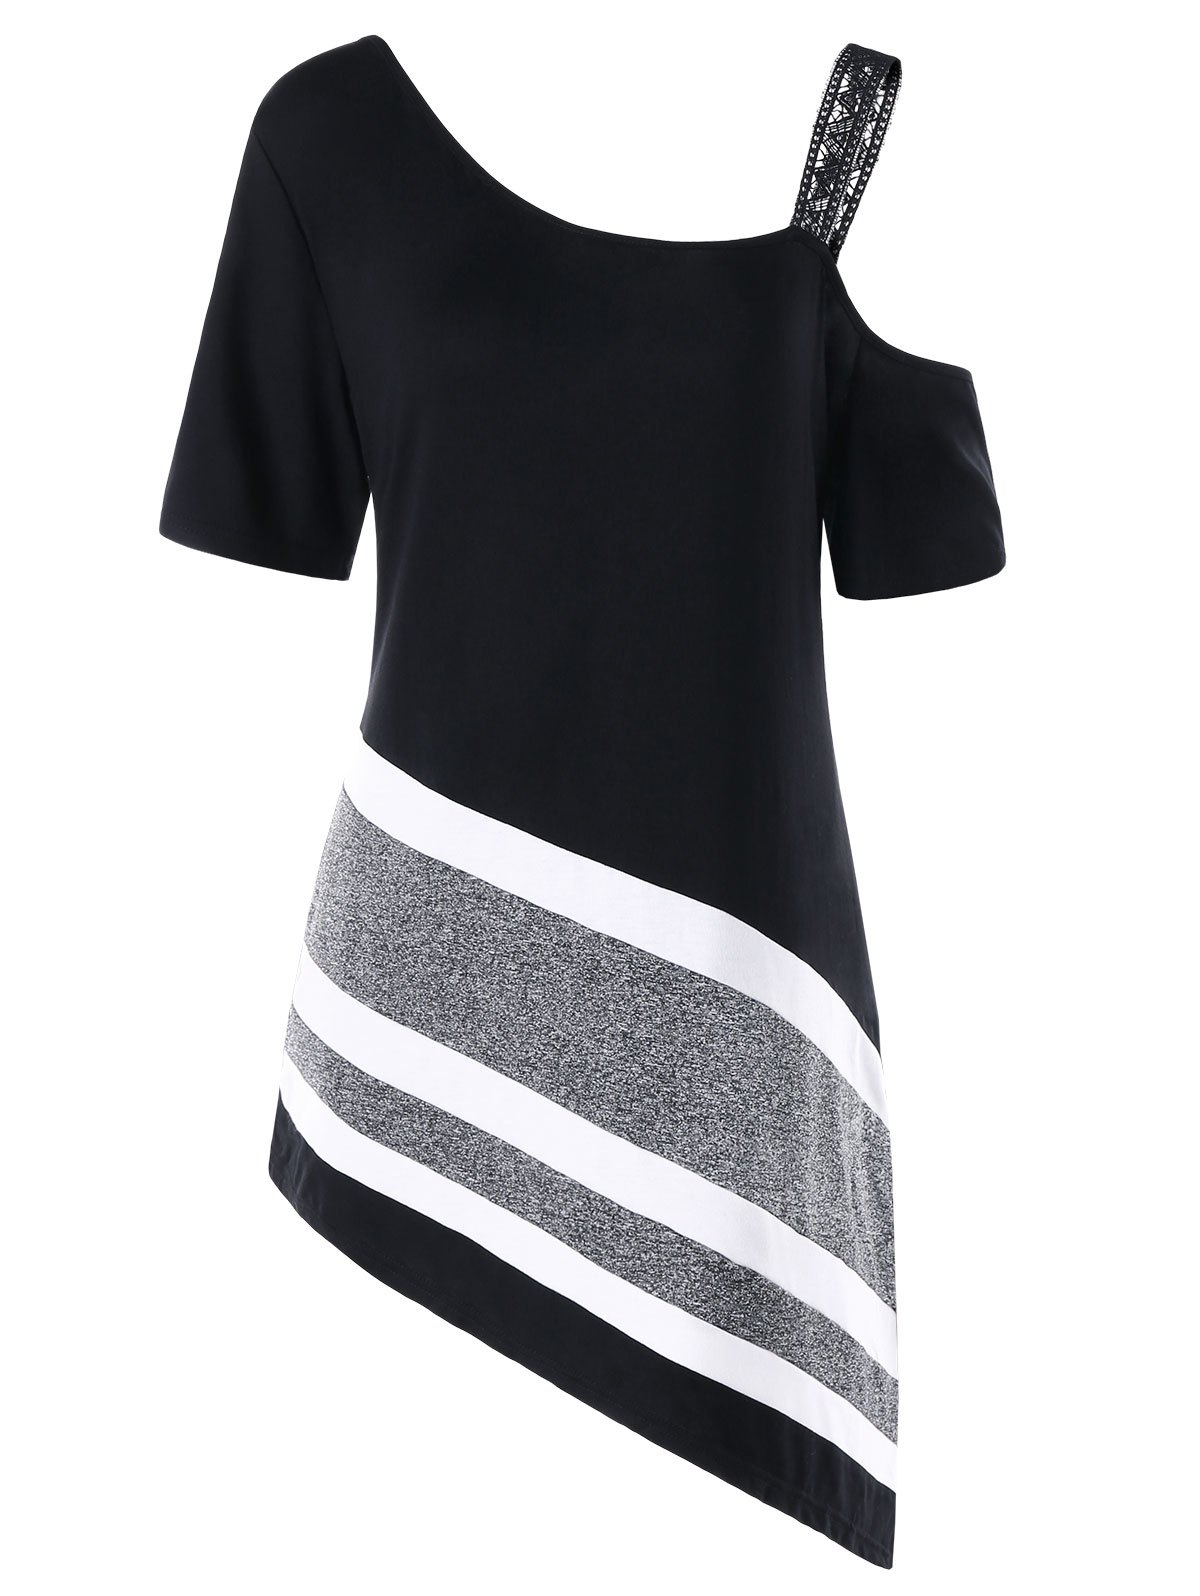 Plus Size Asymmetric Skew Collar Longline T-shirt skew collar longline striped tee